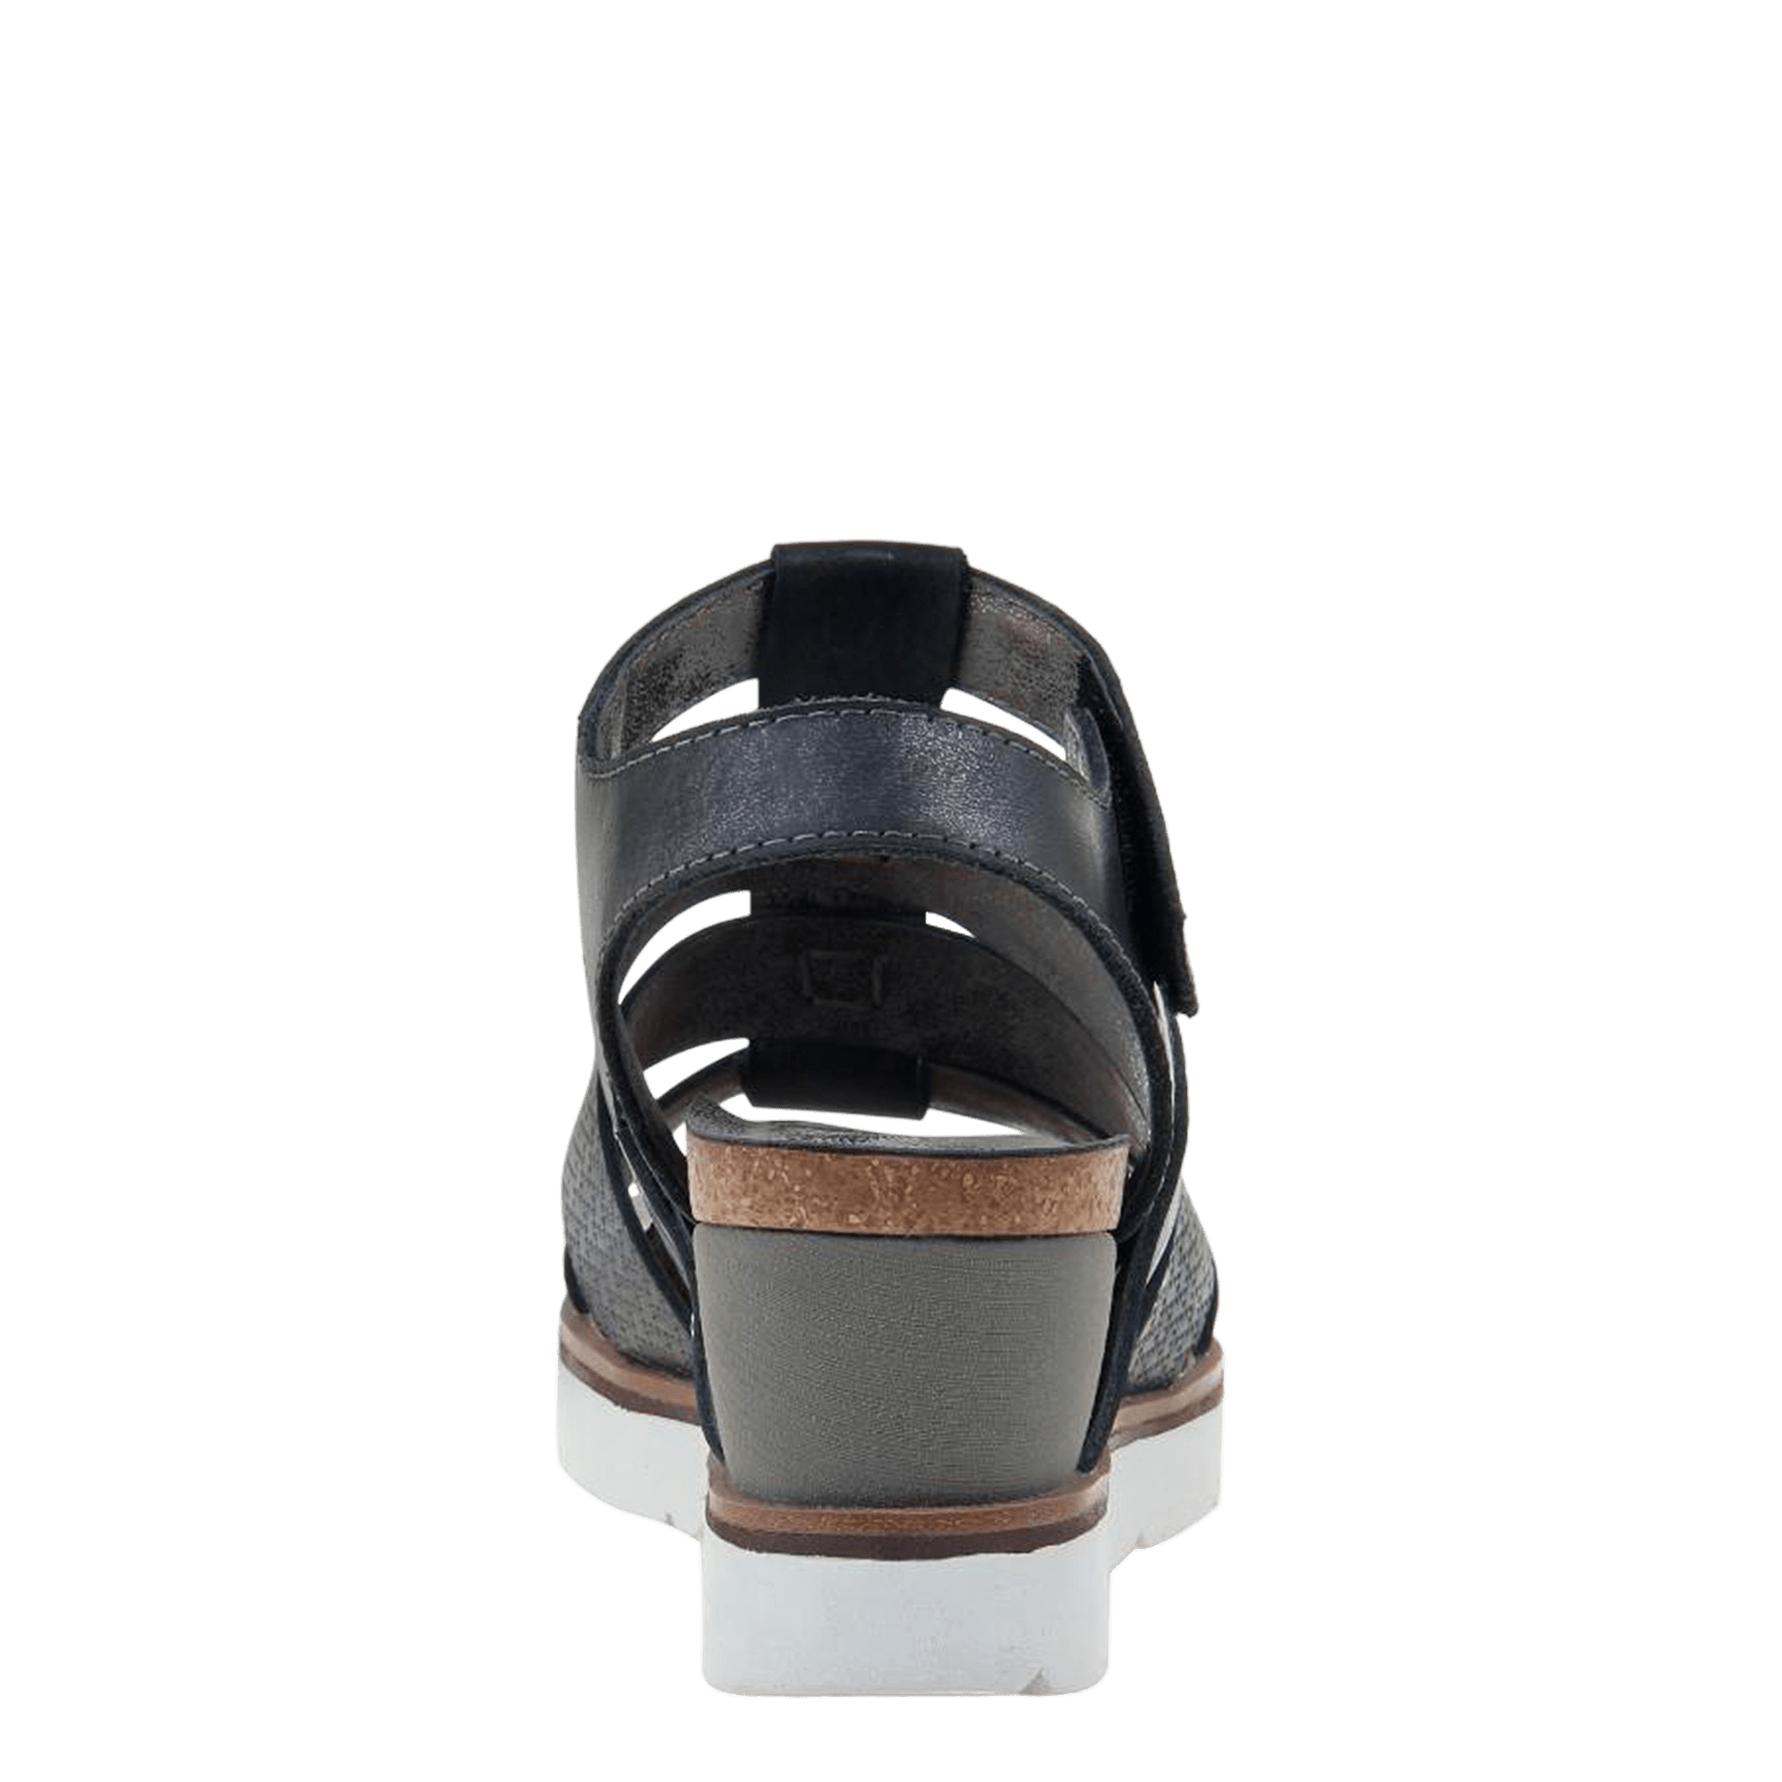 ef27c69324 New Moon in New Black Wedge Sandals   Women's Shoes by OTBT